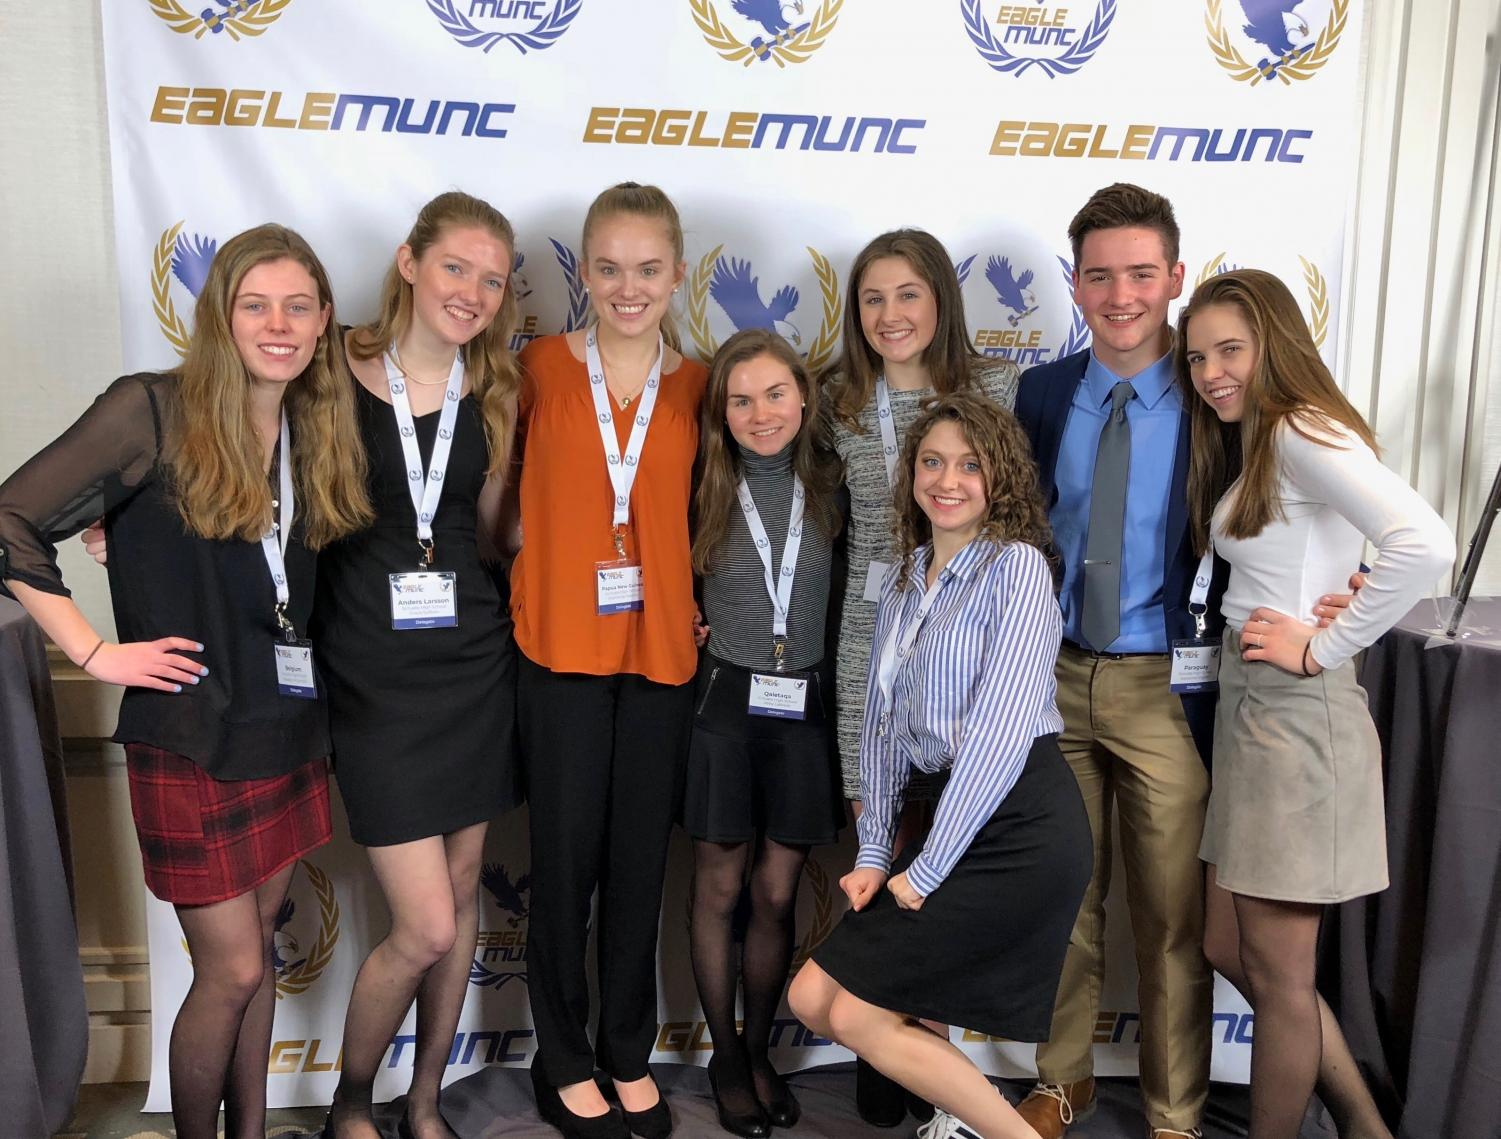 SHS juniors Maddyn McDonald, Grace Sullivan, Stephanie Murphy, Abby LaBreck, Annie Sullivan, Grace Oliveri, Micheal O'Keefe and Kat English at BC MUN. Photo Courtesy of Kat English.